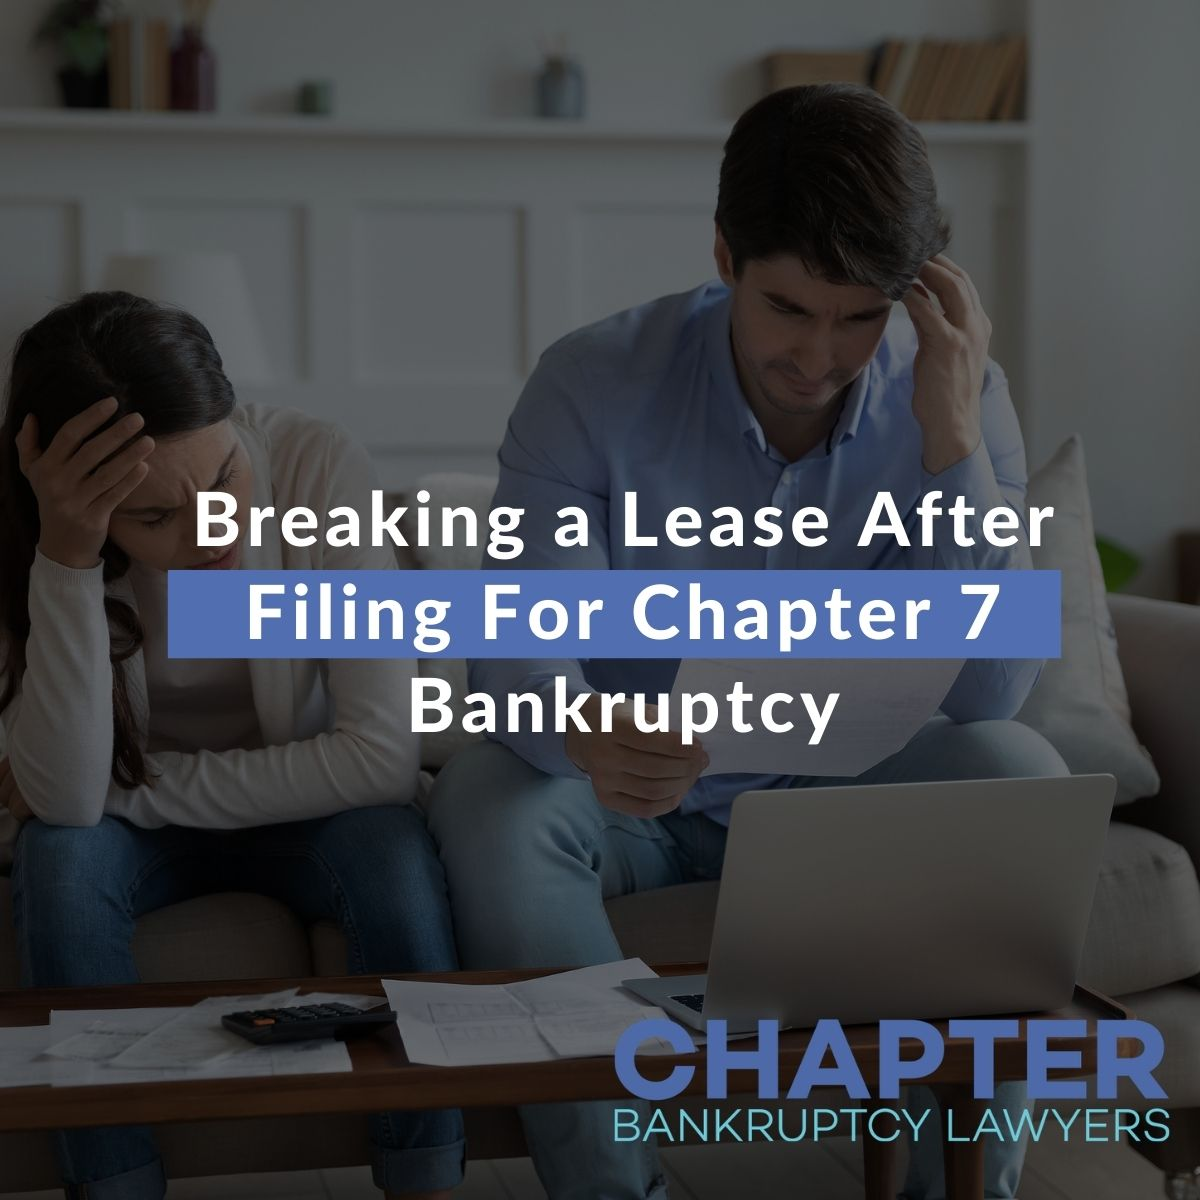 Breaking a Lease After Filing For Chapter 7 Bankruptcy